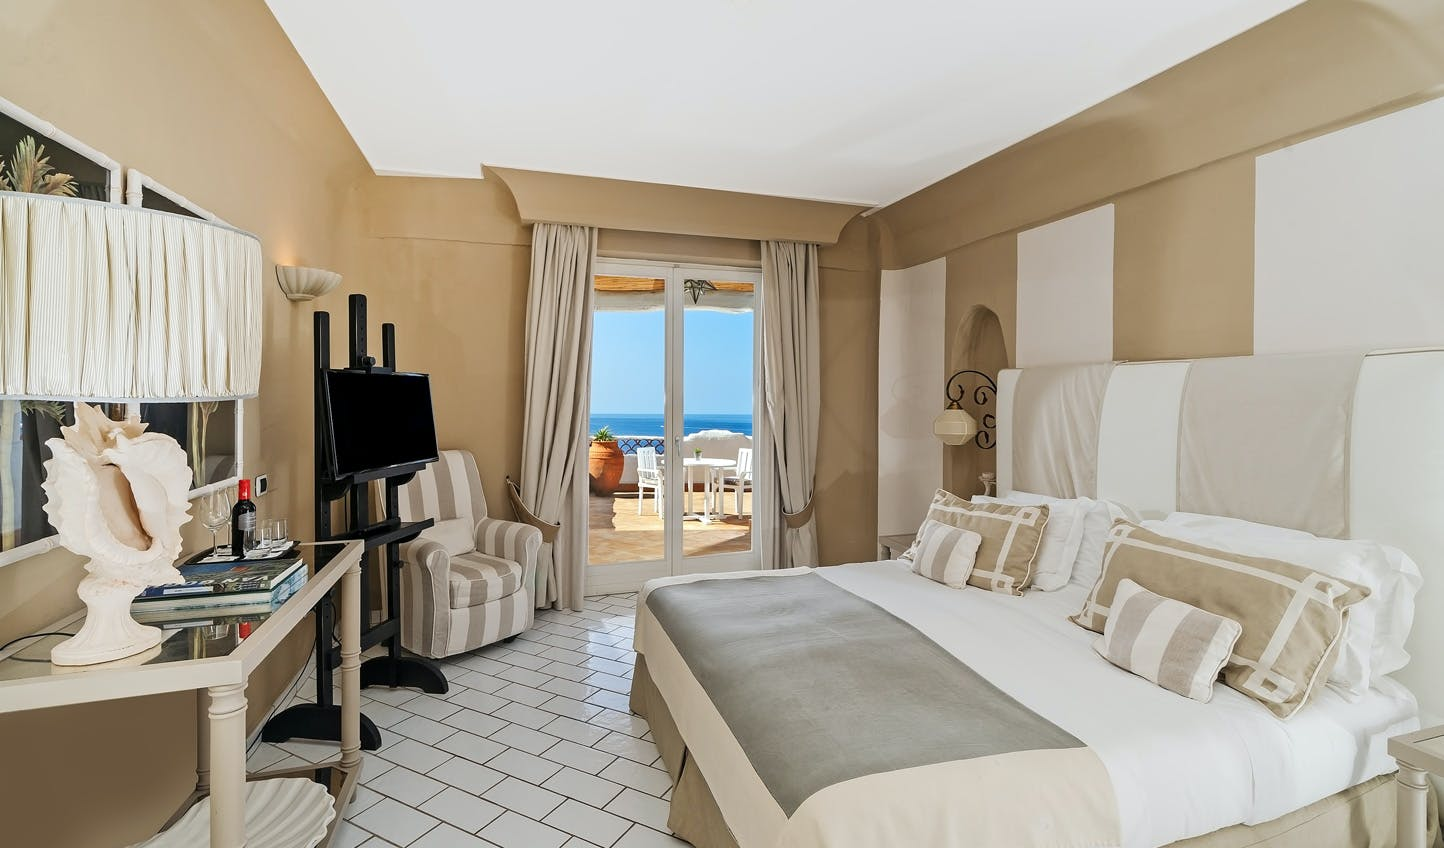 Luxury Hotels in Vulcano